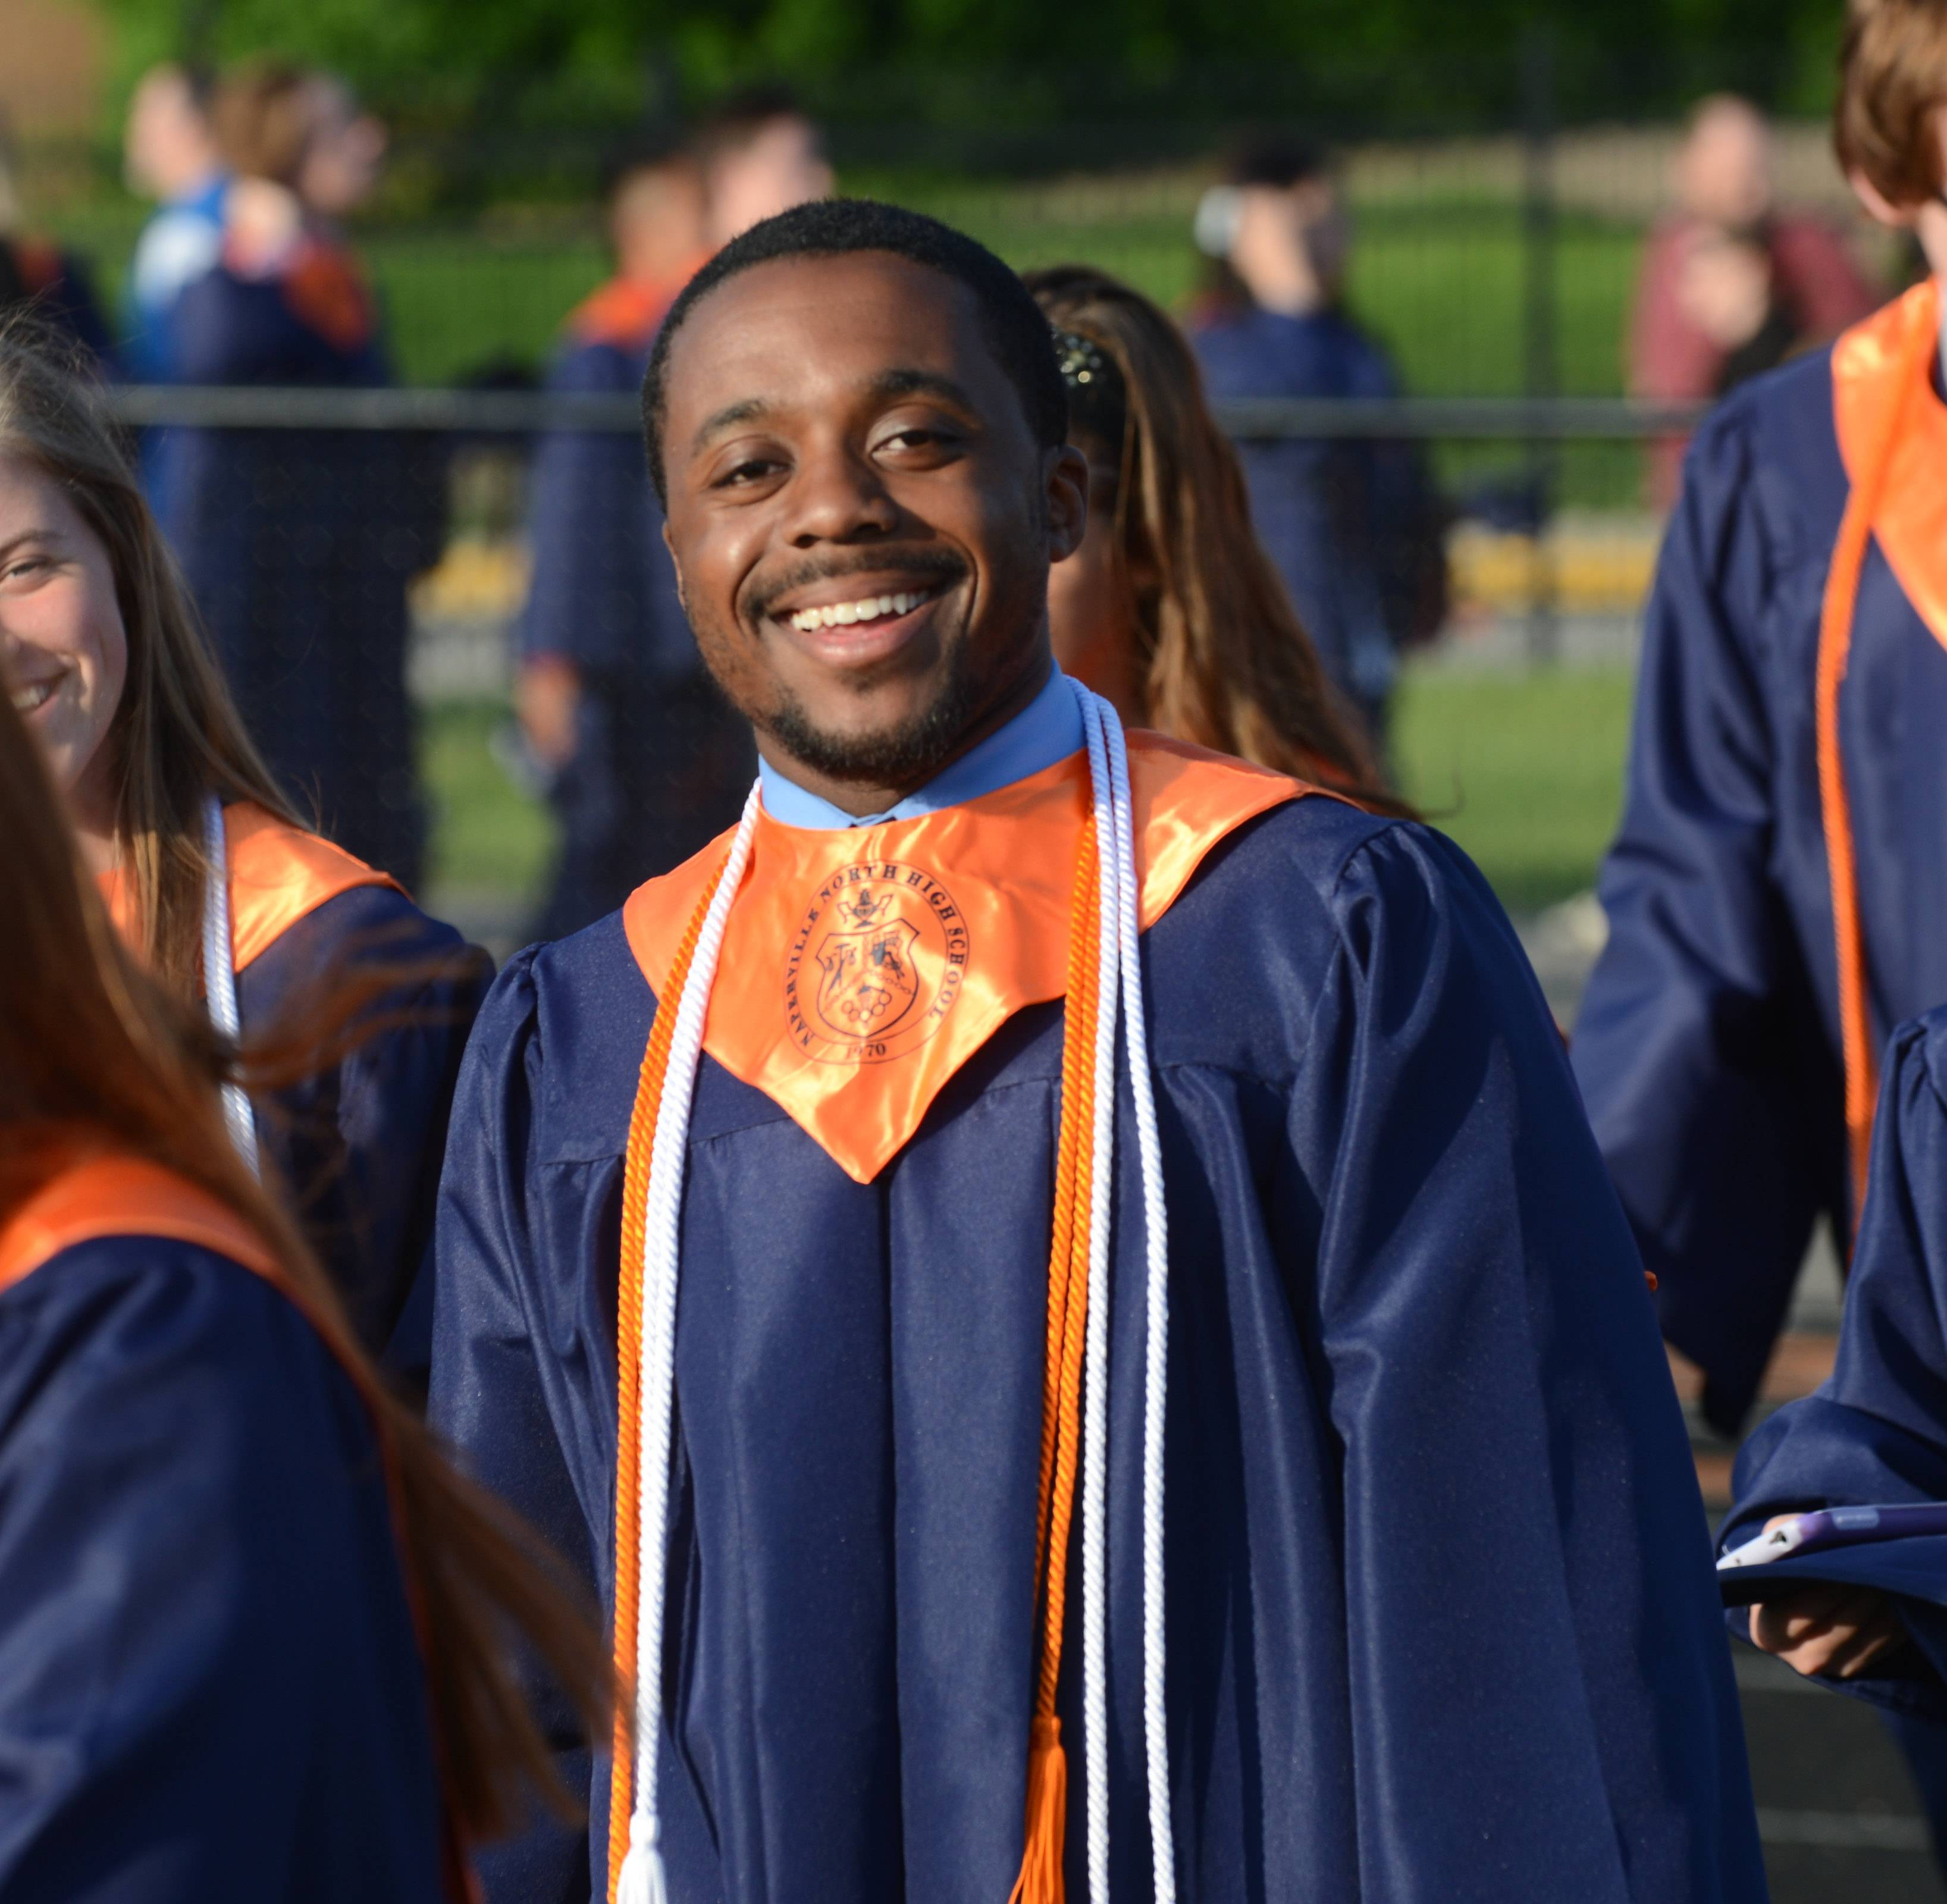 Naperville North High School held its rain-delayed graduation Wednesday, May 28 at the school's football field.